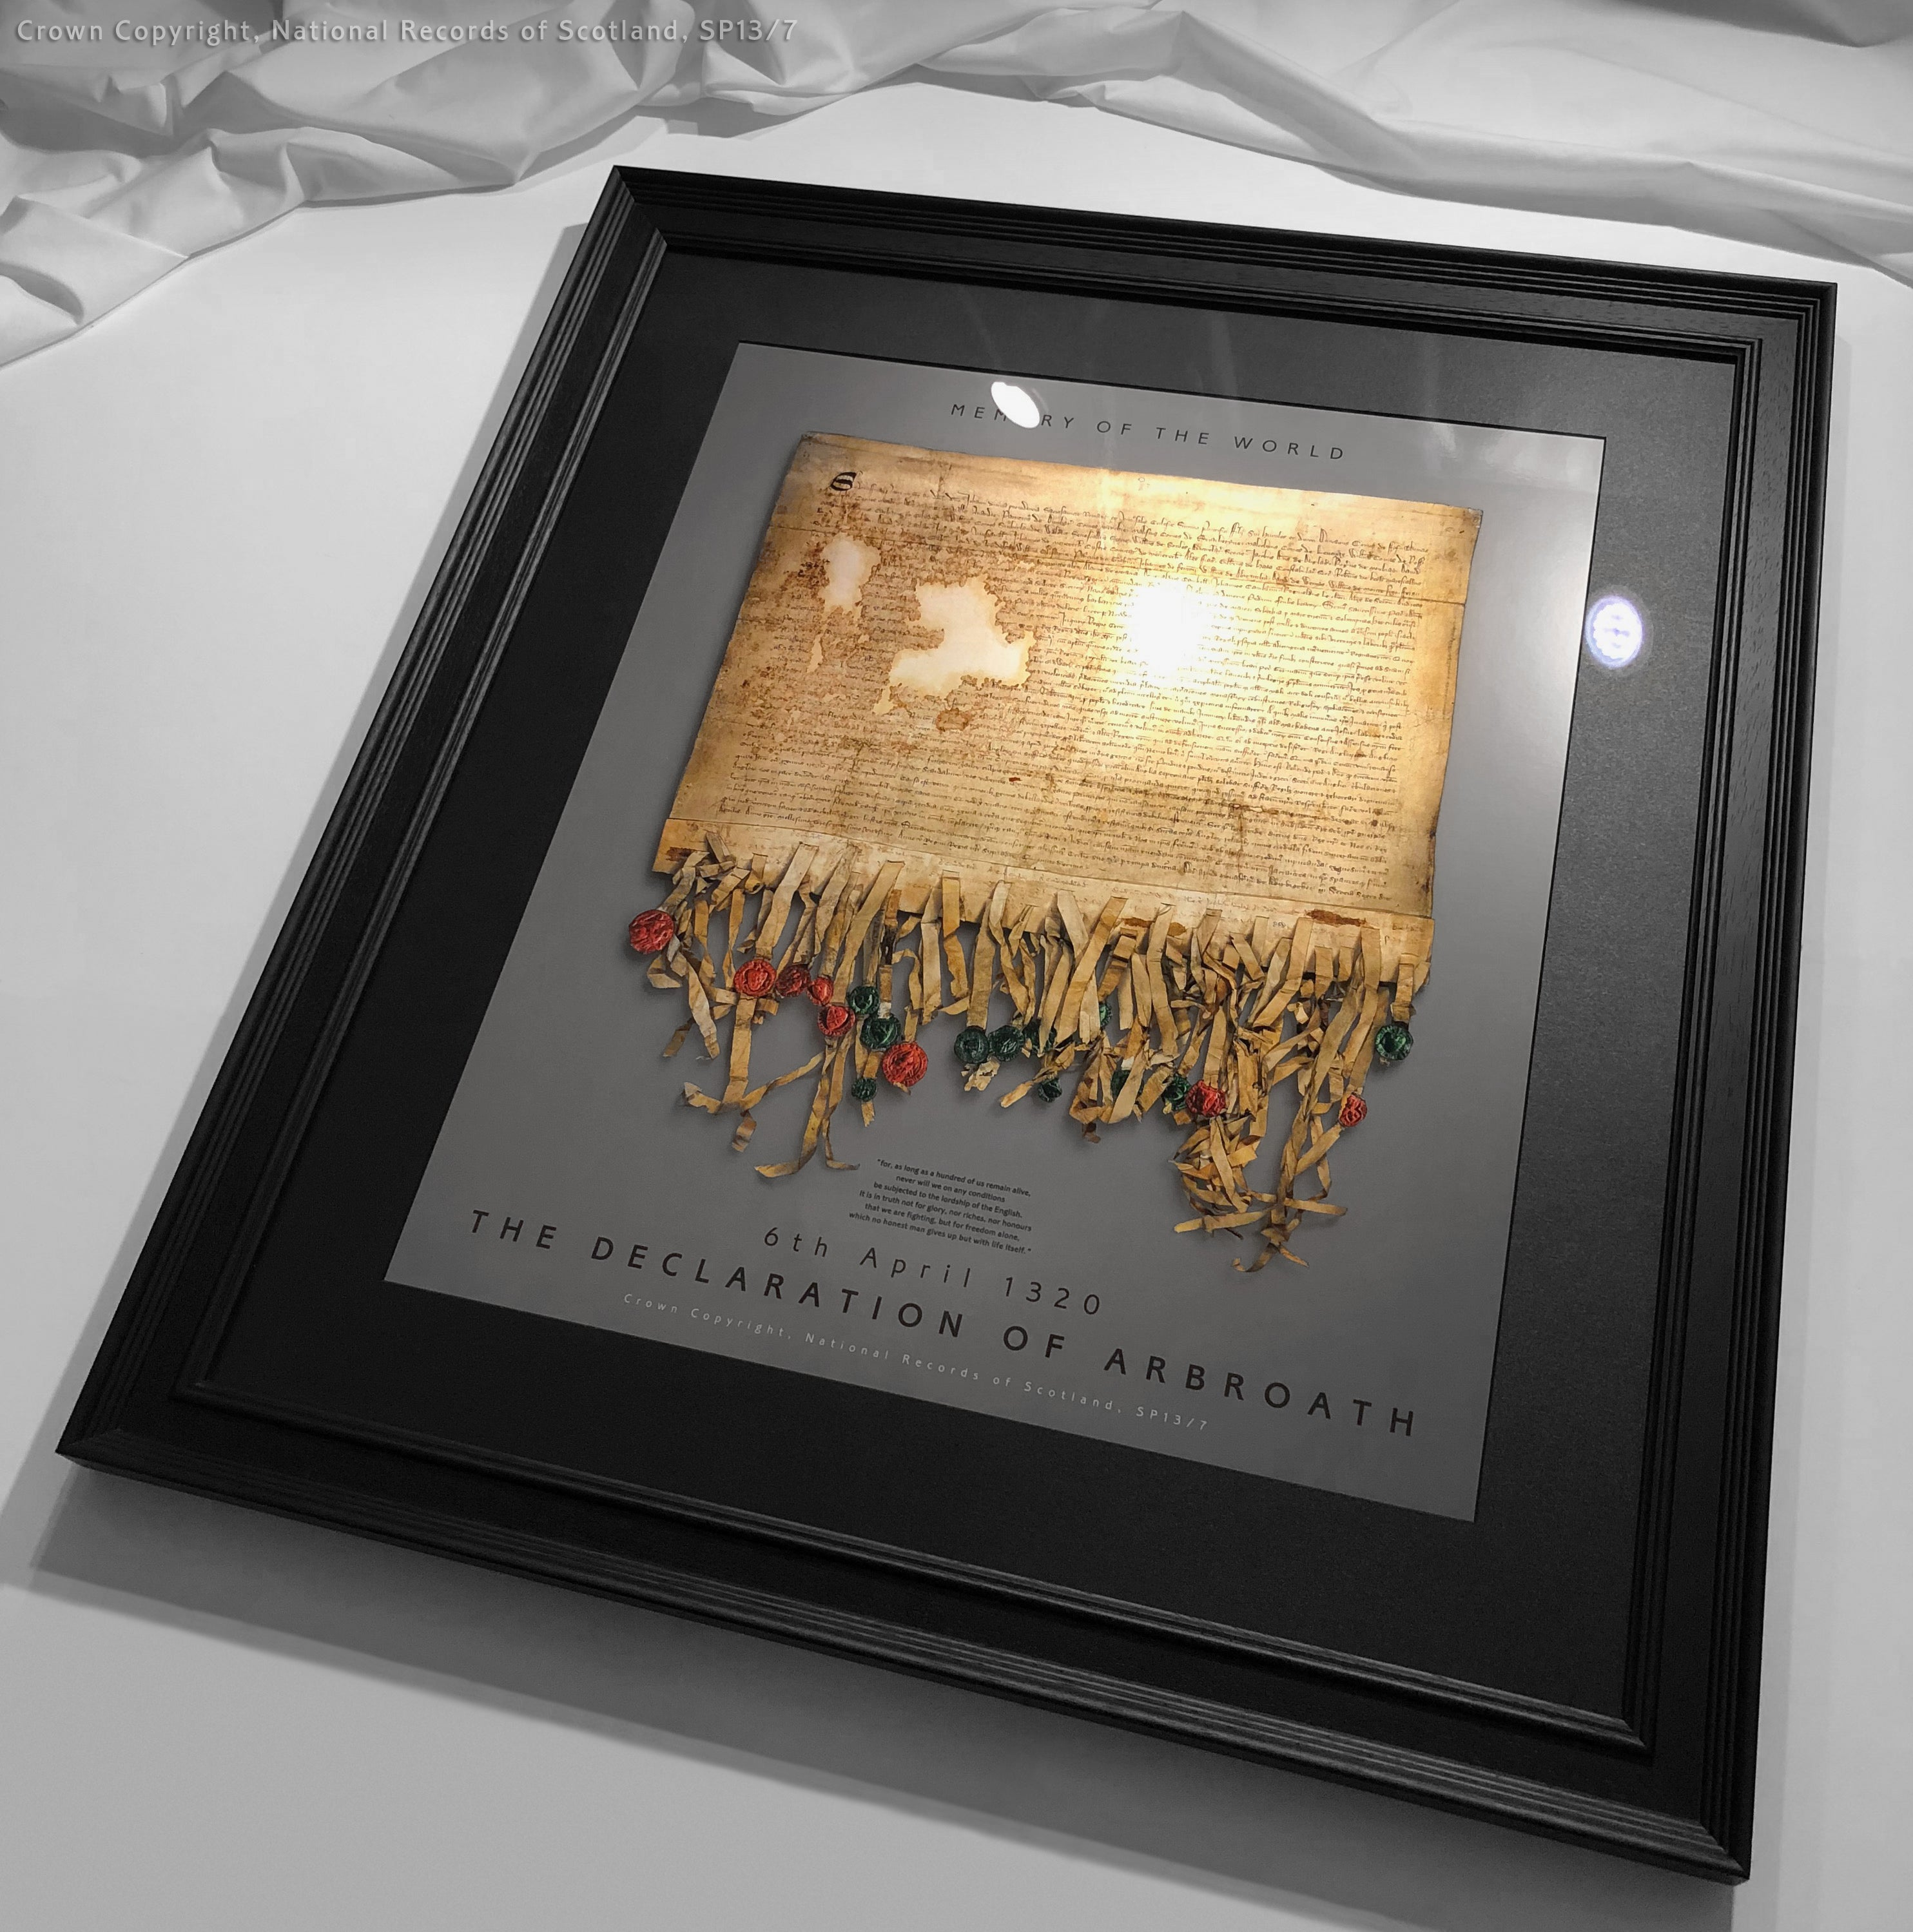 The Declaration of Arbroath Gold Metallic Print Editions - Pewter - Only 700 copies